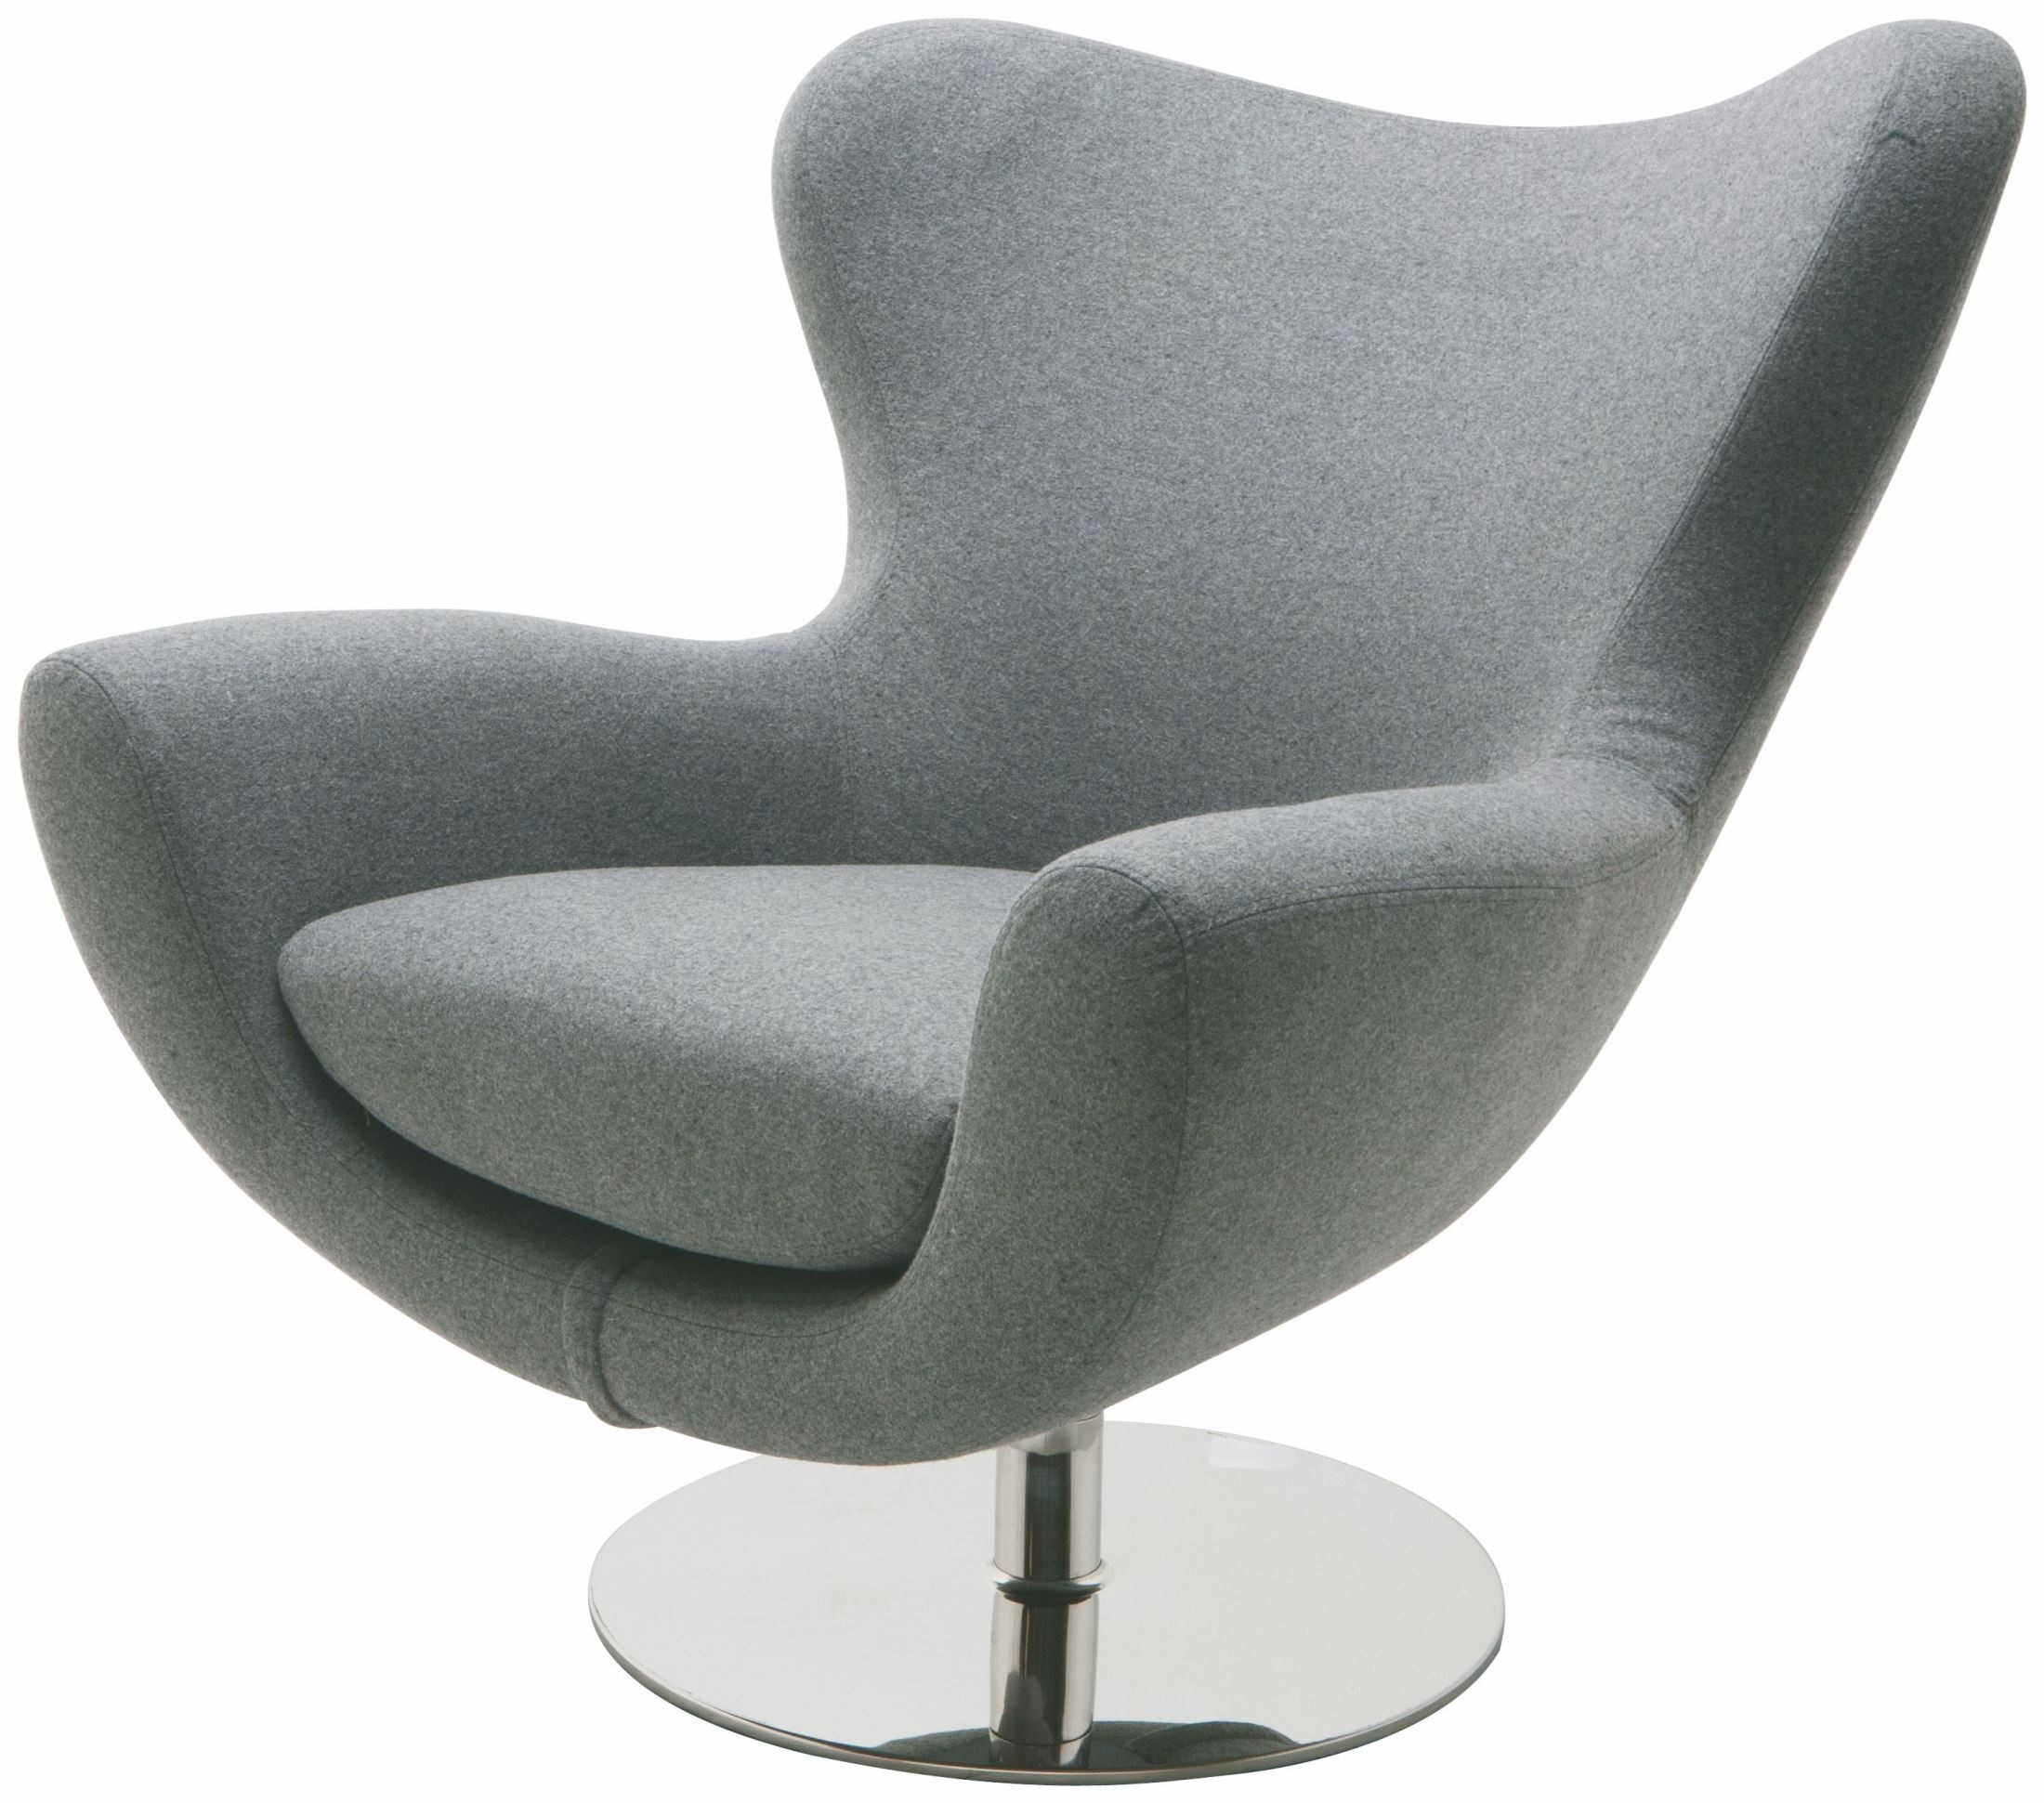 Modern Comfortable Furniture: Conner Light Grey Fabric Lounger Chair From Nuevo